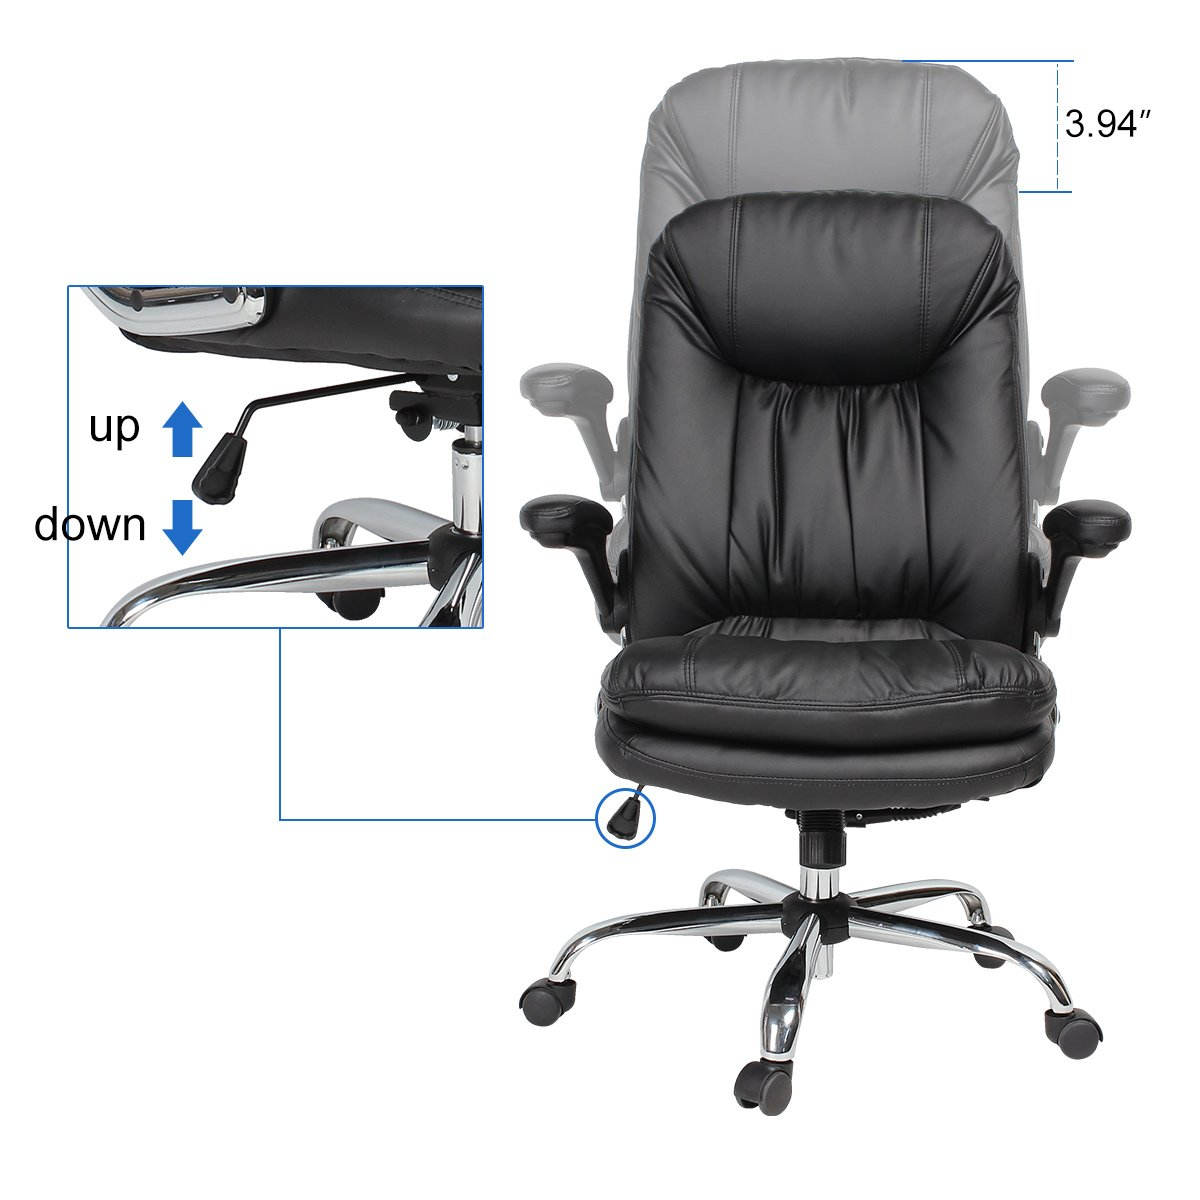 YAMASORO Ergonomic Home Office Chair with Flip-Up Arms and Comfy Headrest PU Leather High-Back Computer Desk Chair Big and Tall Capacity 330lbs Black by YAMASORO (Image #10)